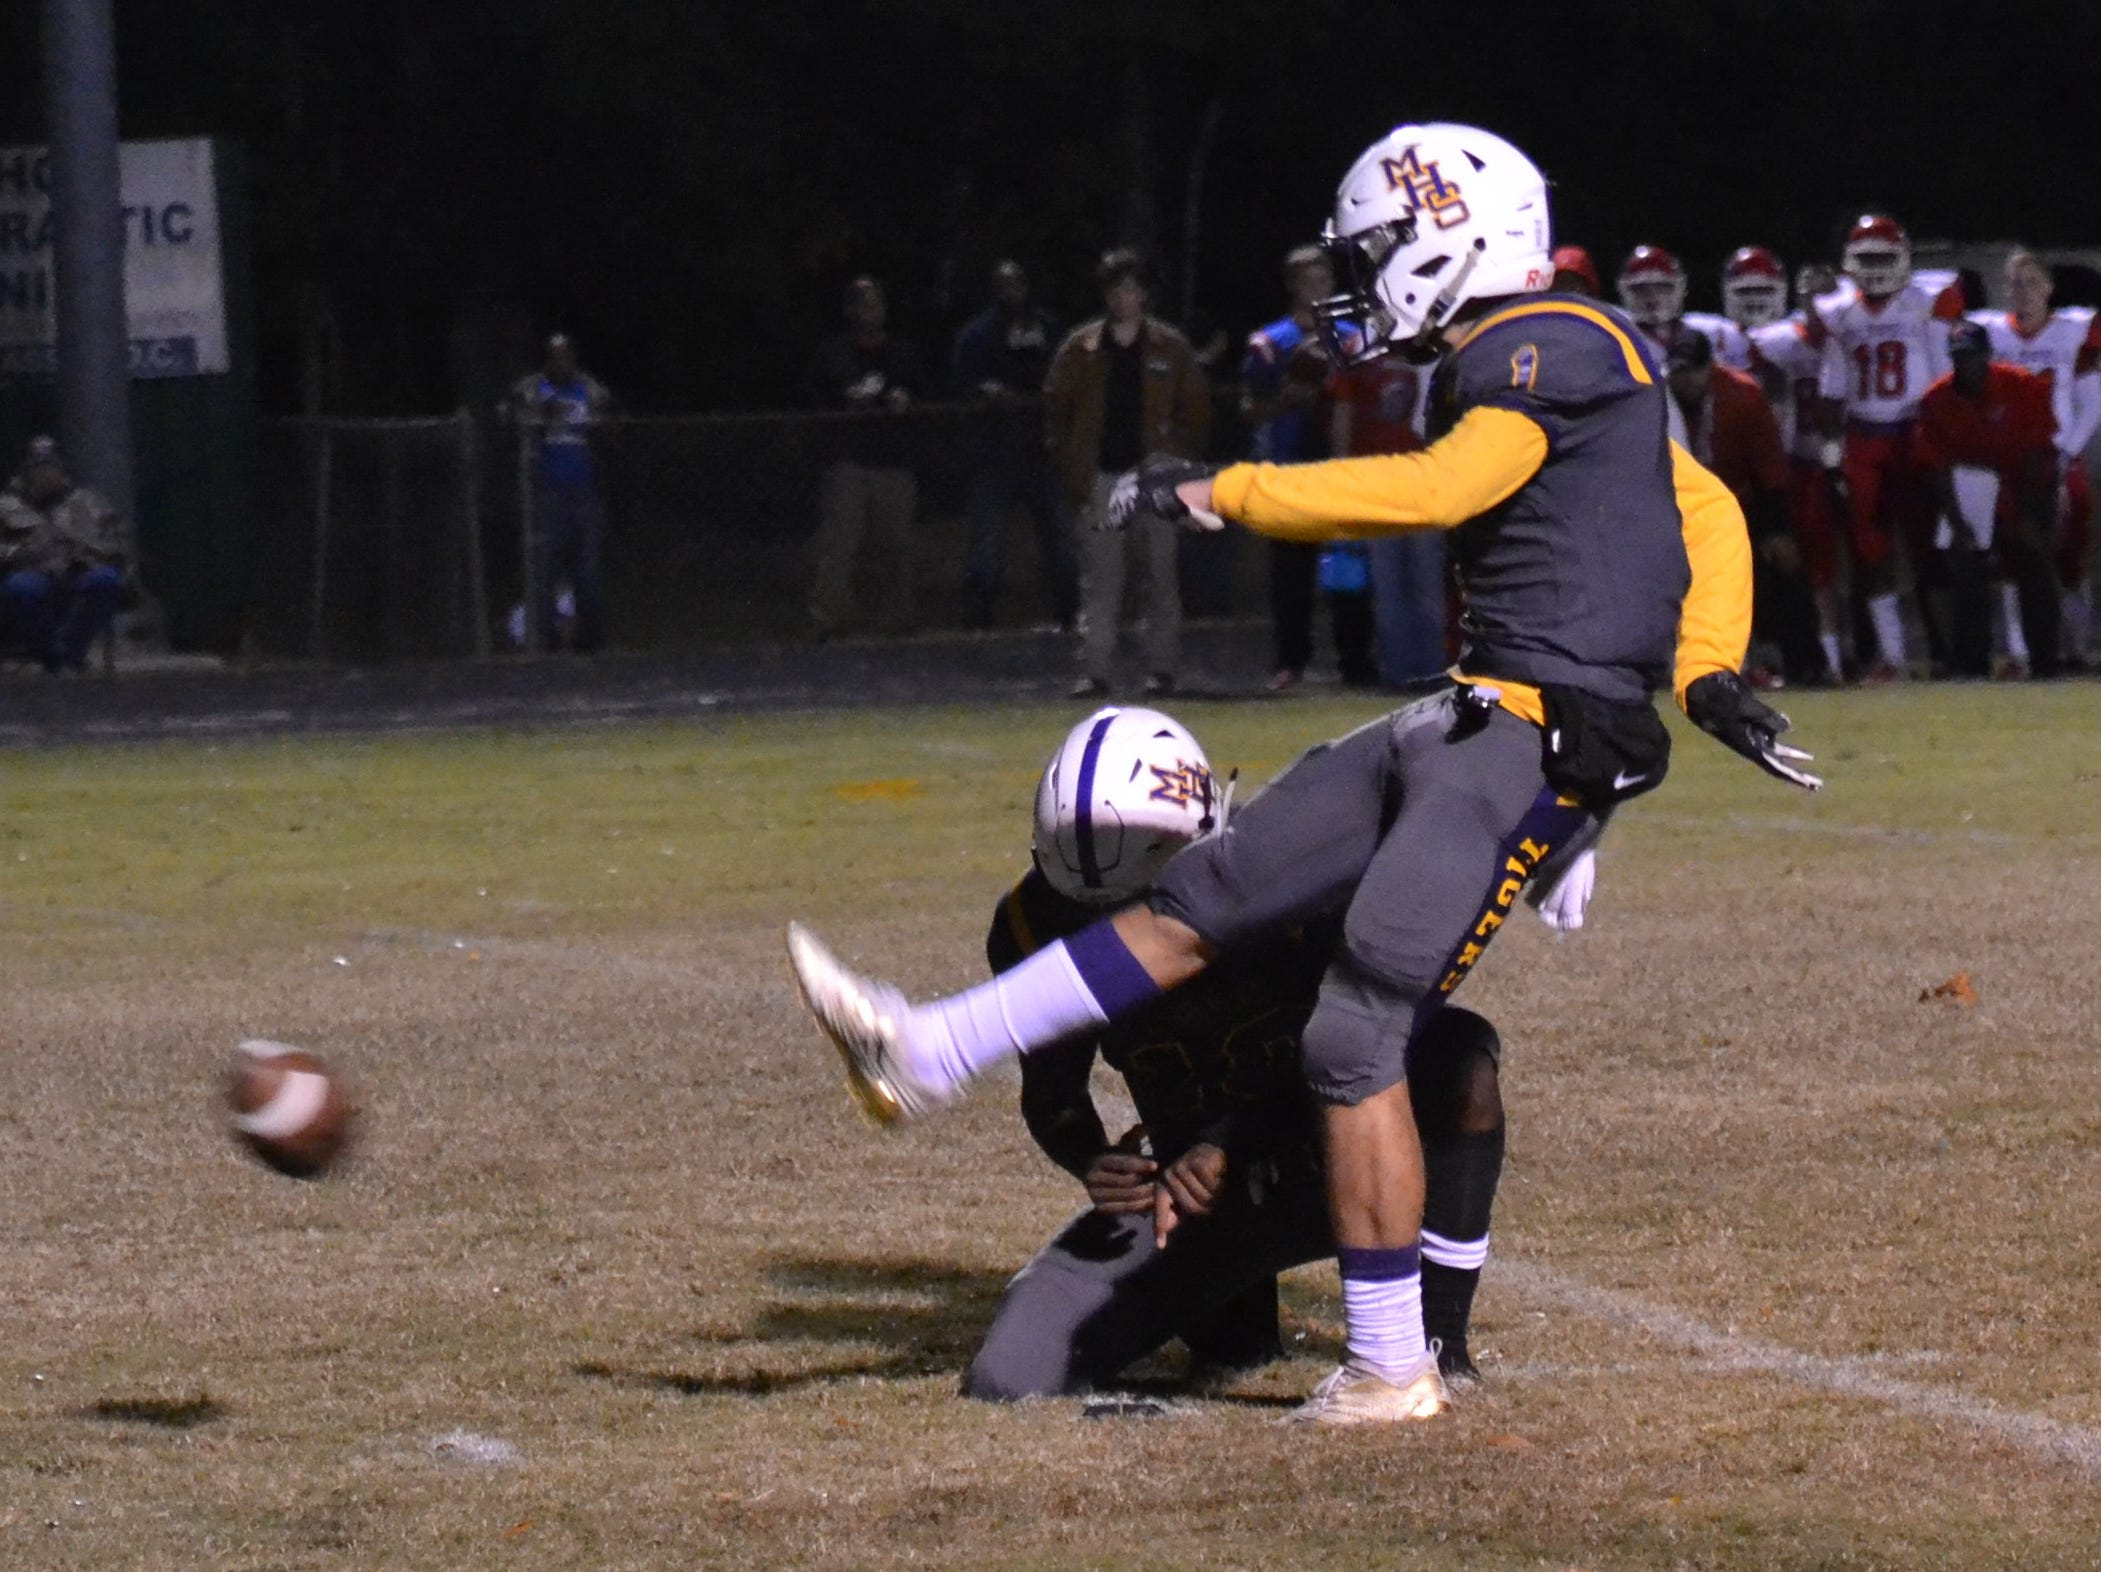 Marksville's Braydon Flores attempts a field goal. Marksville and Caldwell met in the regular season finale Friday night with Caldwell edging Marksville 13-8.